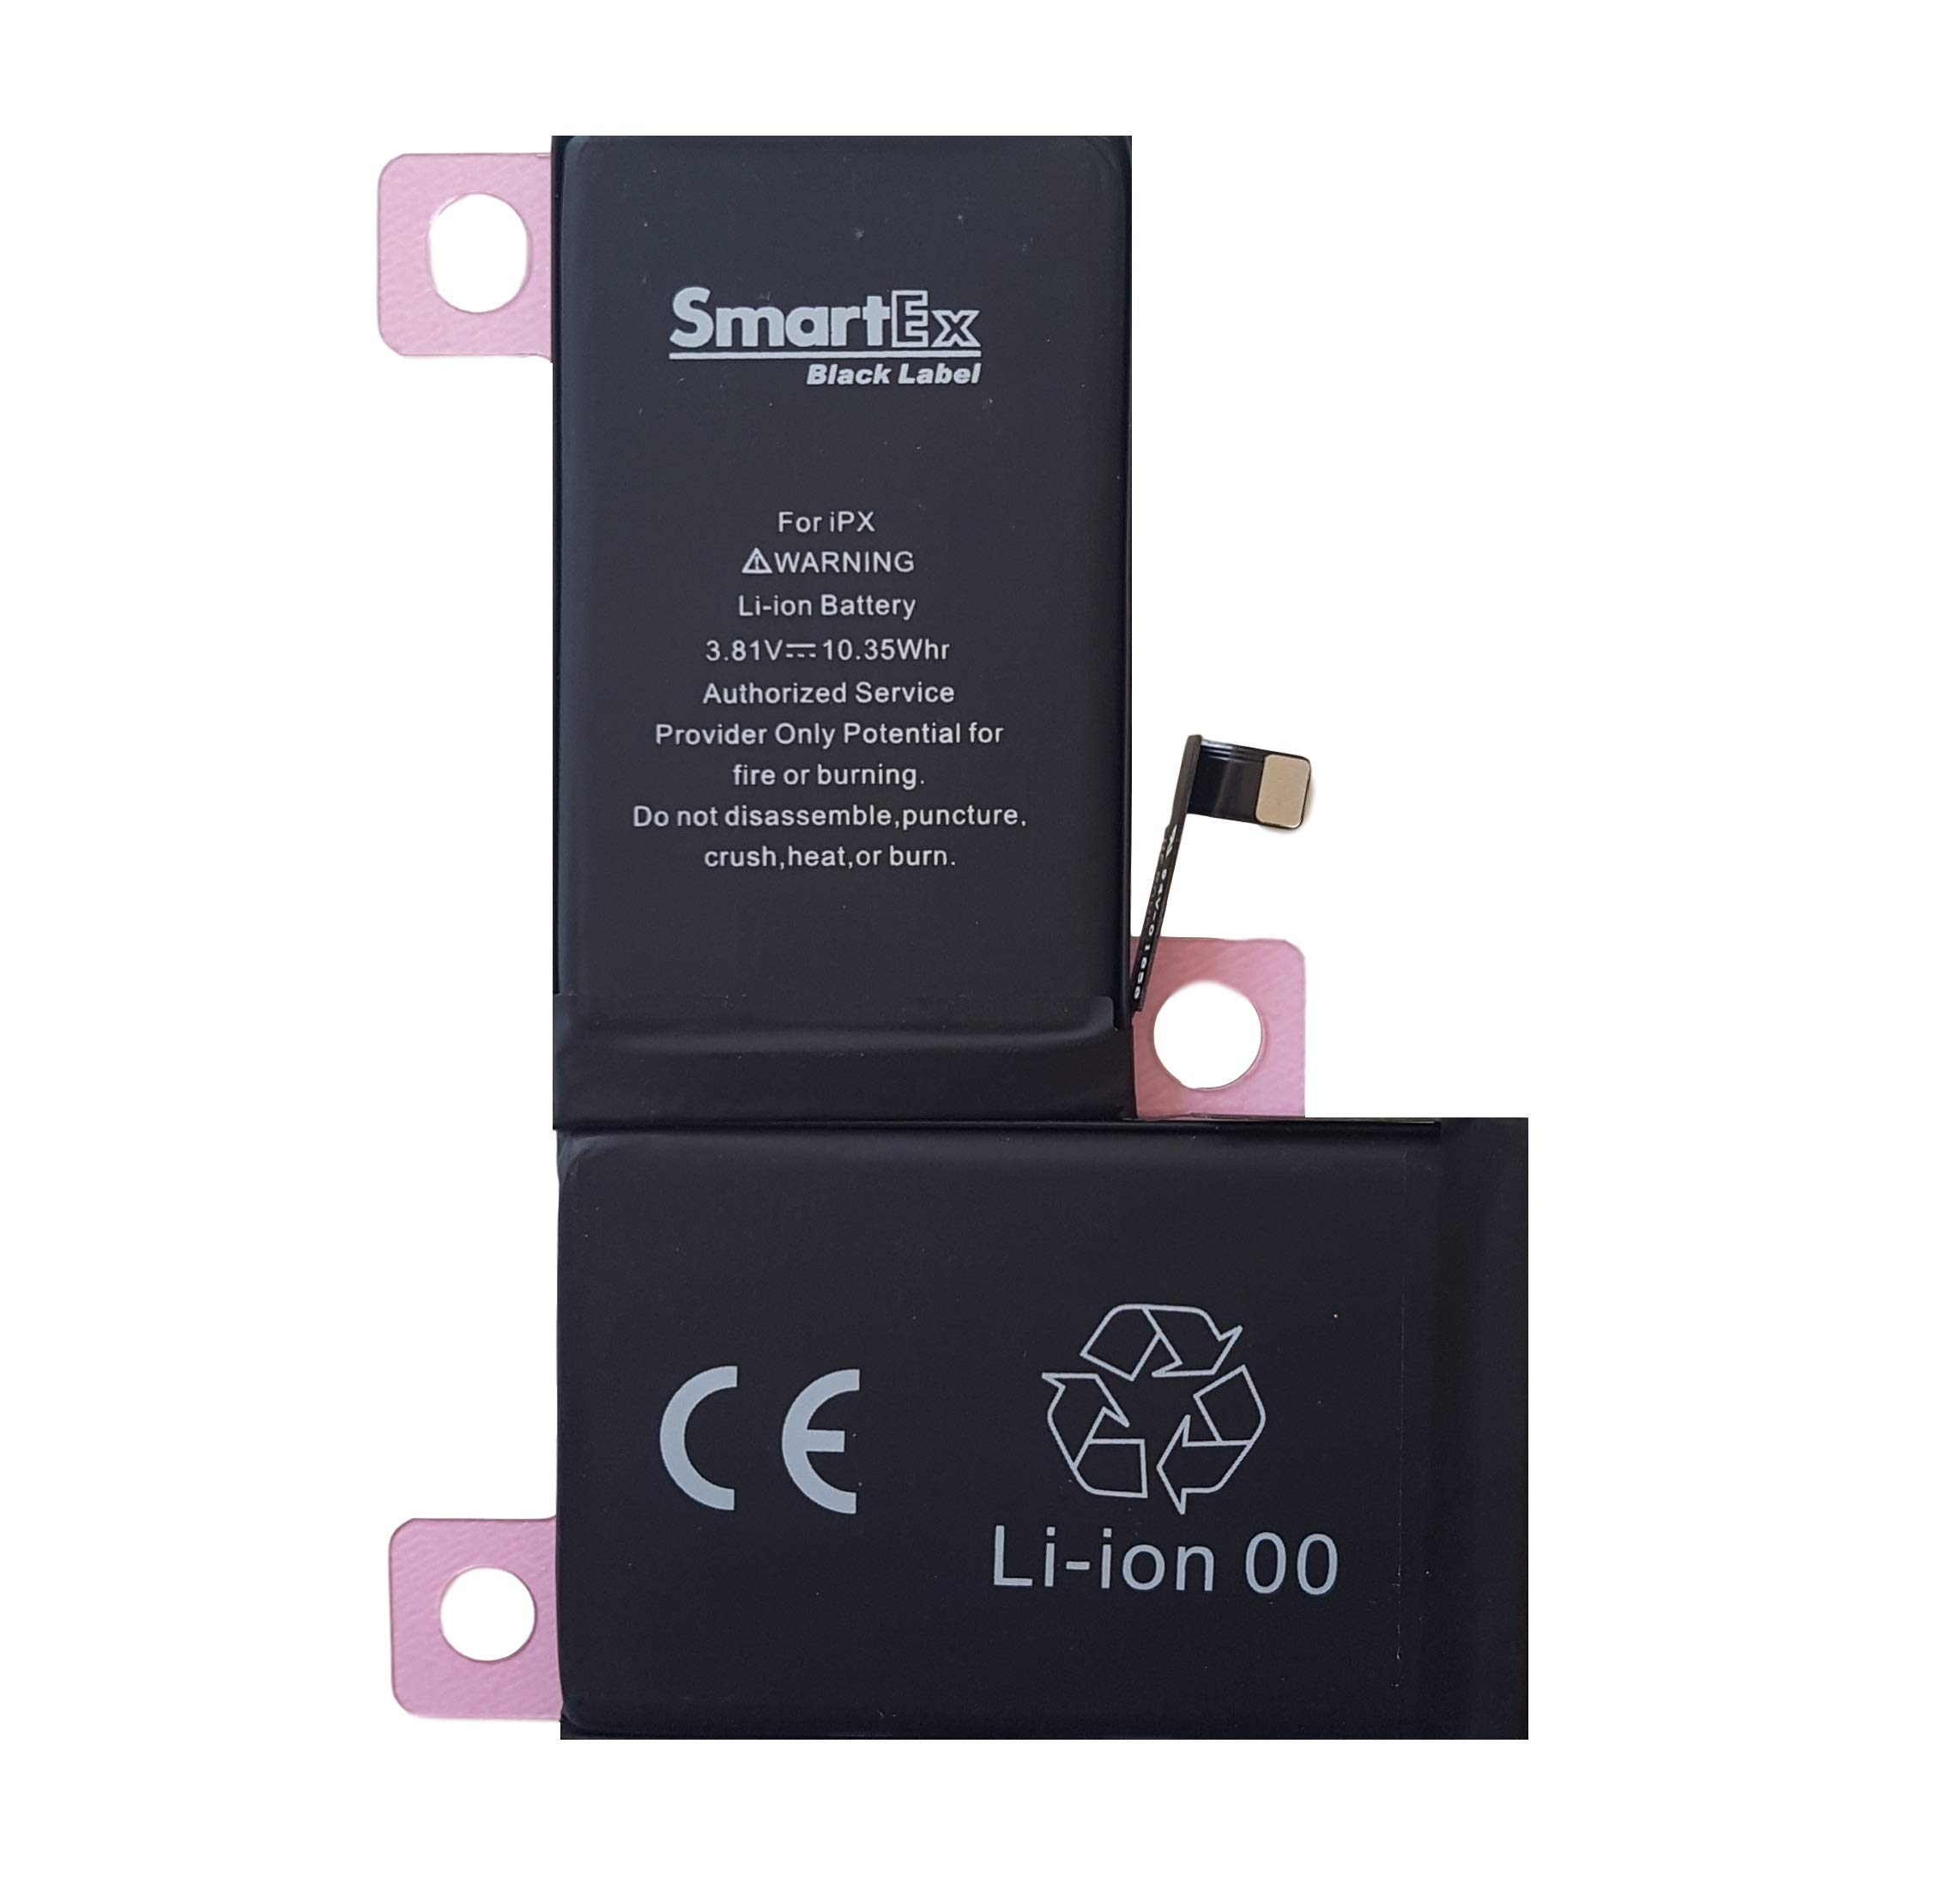 2019 Ann/ée Smartex/® Black Label Batterie Compatible avec iPhone 7-1960 mAh